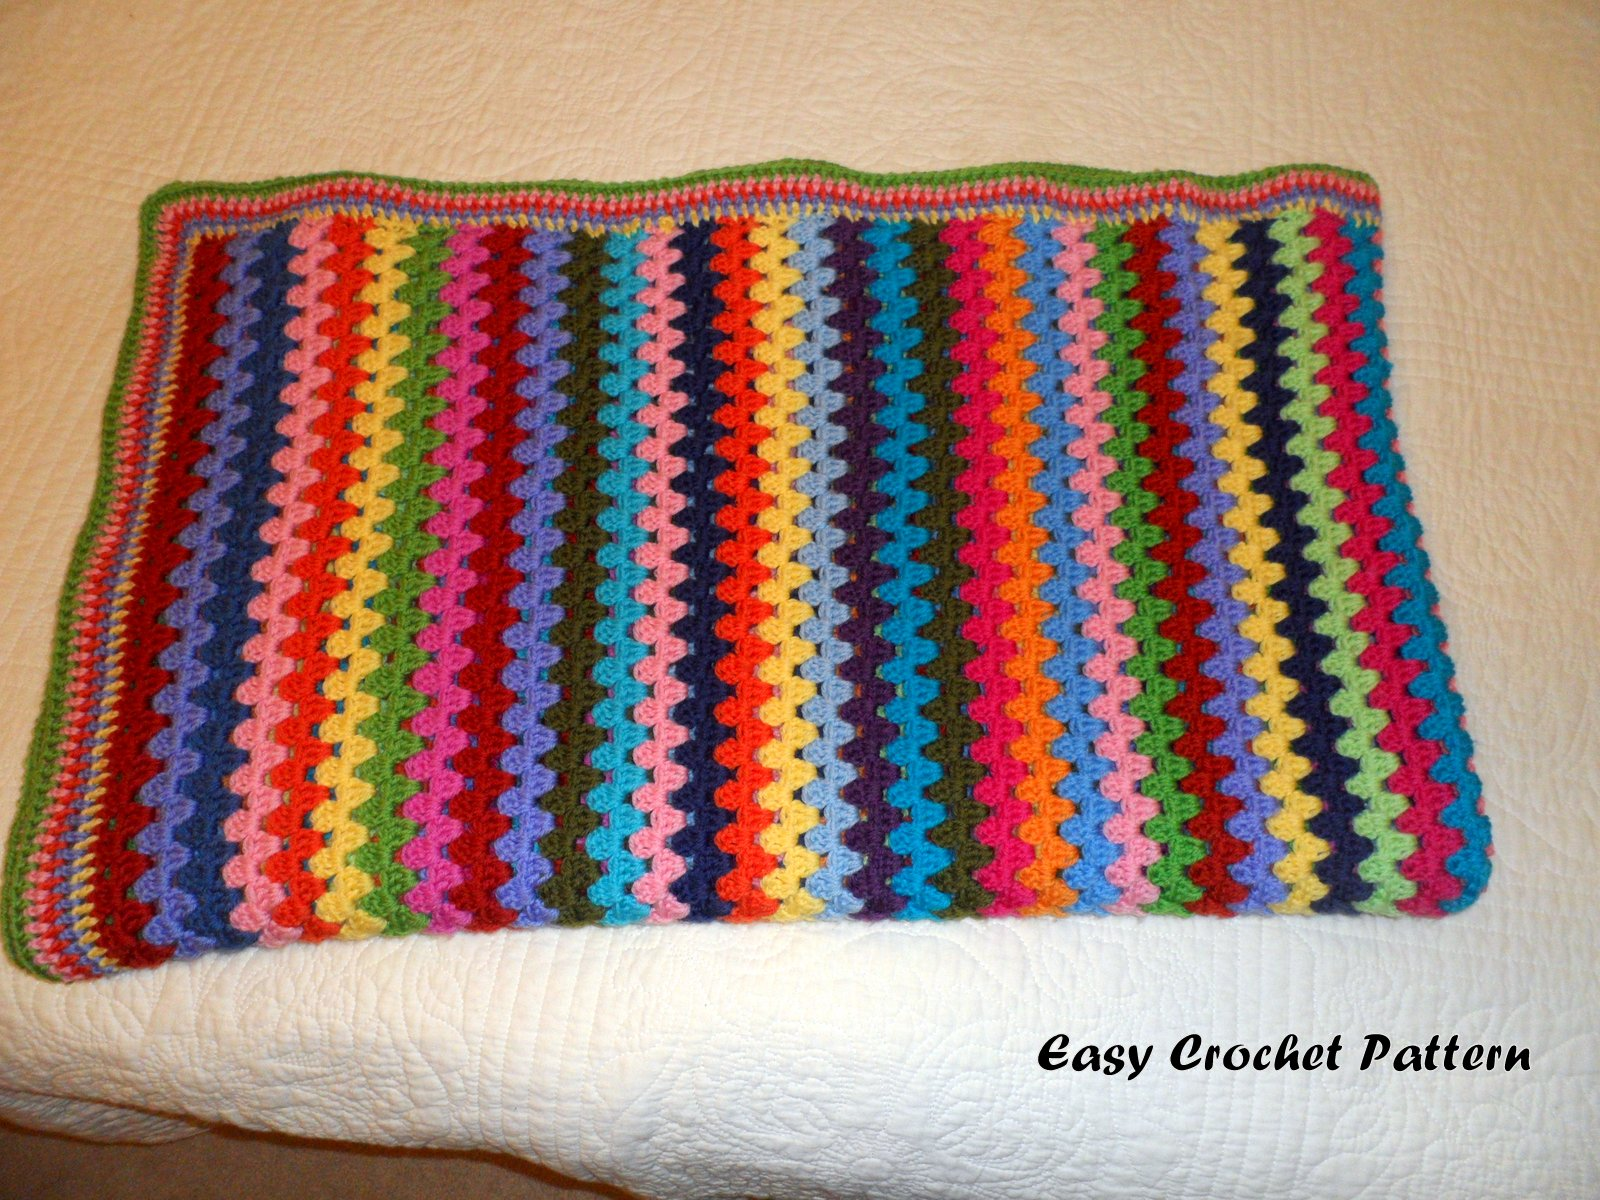 Crochet Afghan Patterns Stripes : Easy Crochet Pattern: Granny Stripe Afghan Finish